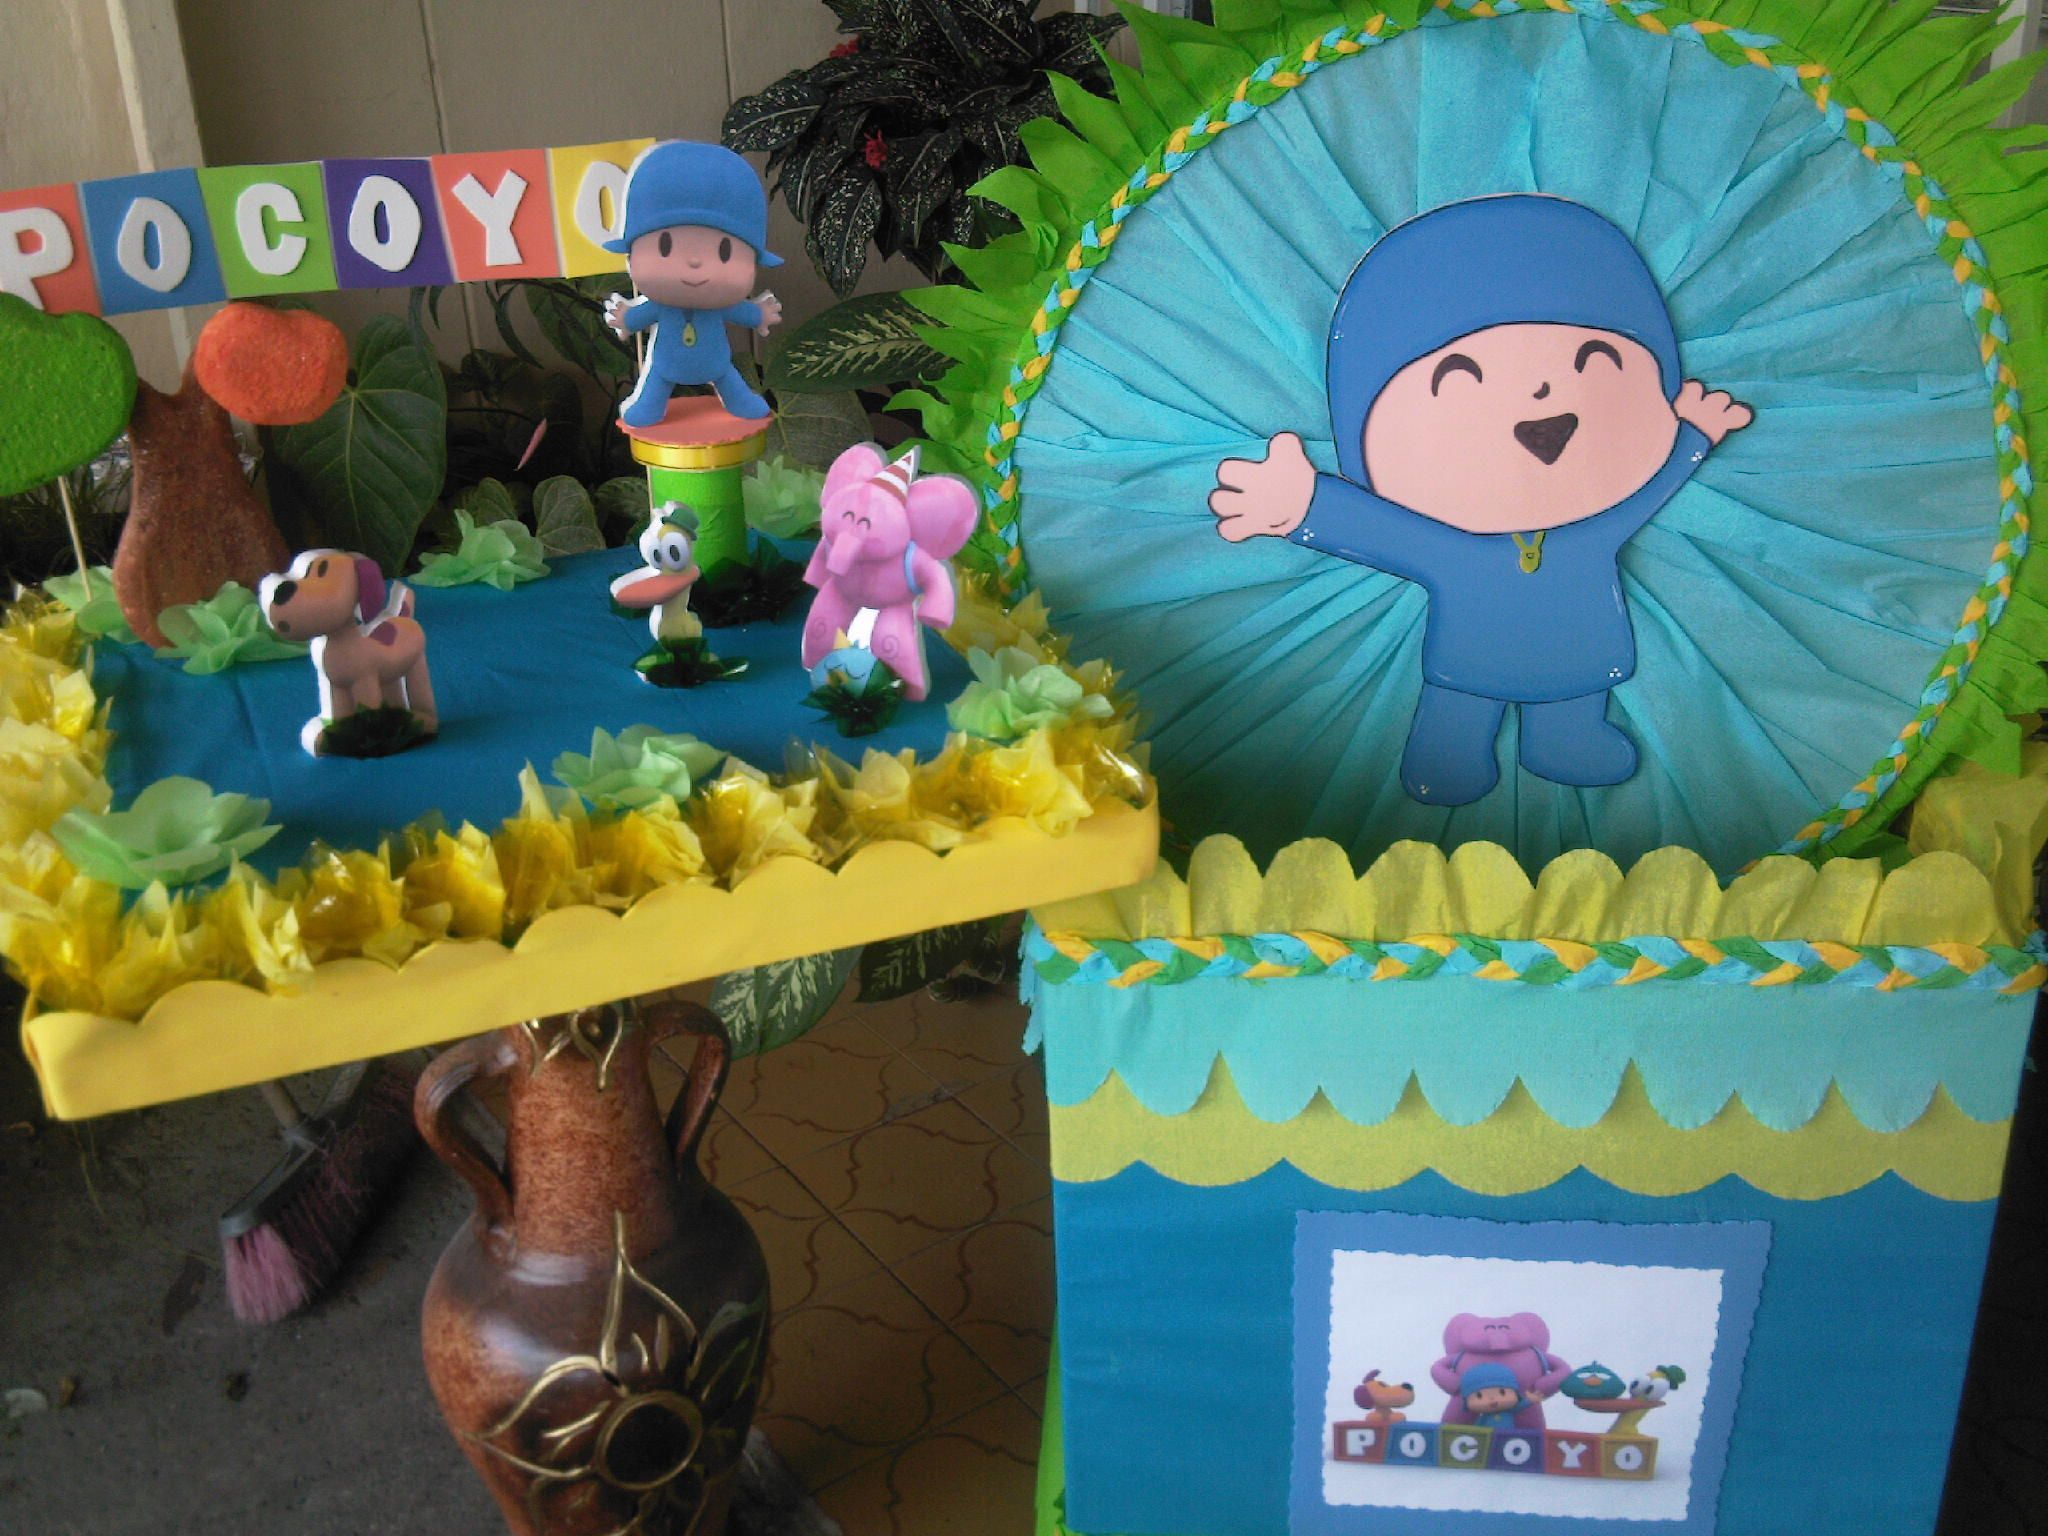 Pocoyo decorations fiesta pocoyo decoraci n imagui - Ideas decoracion fiesta ...